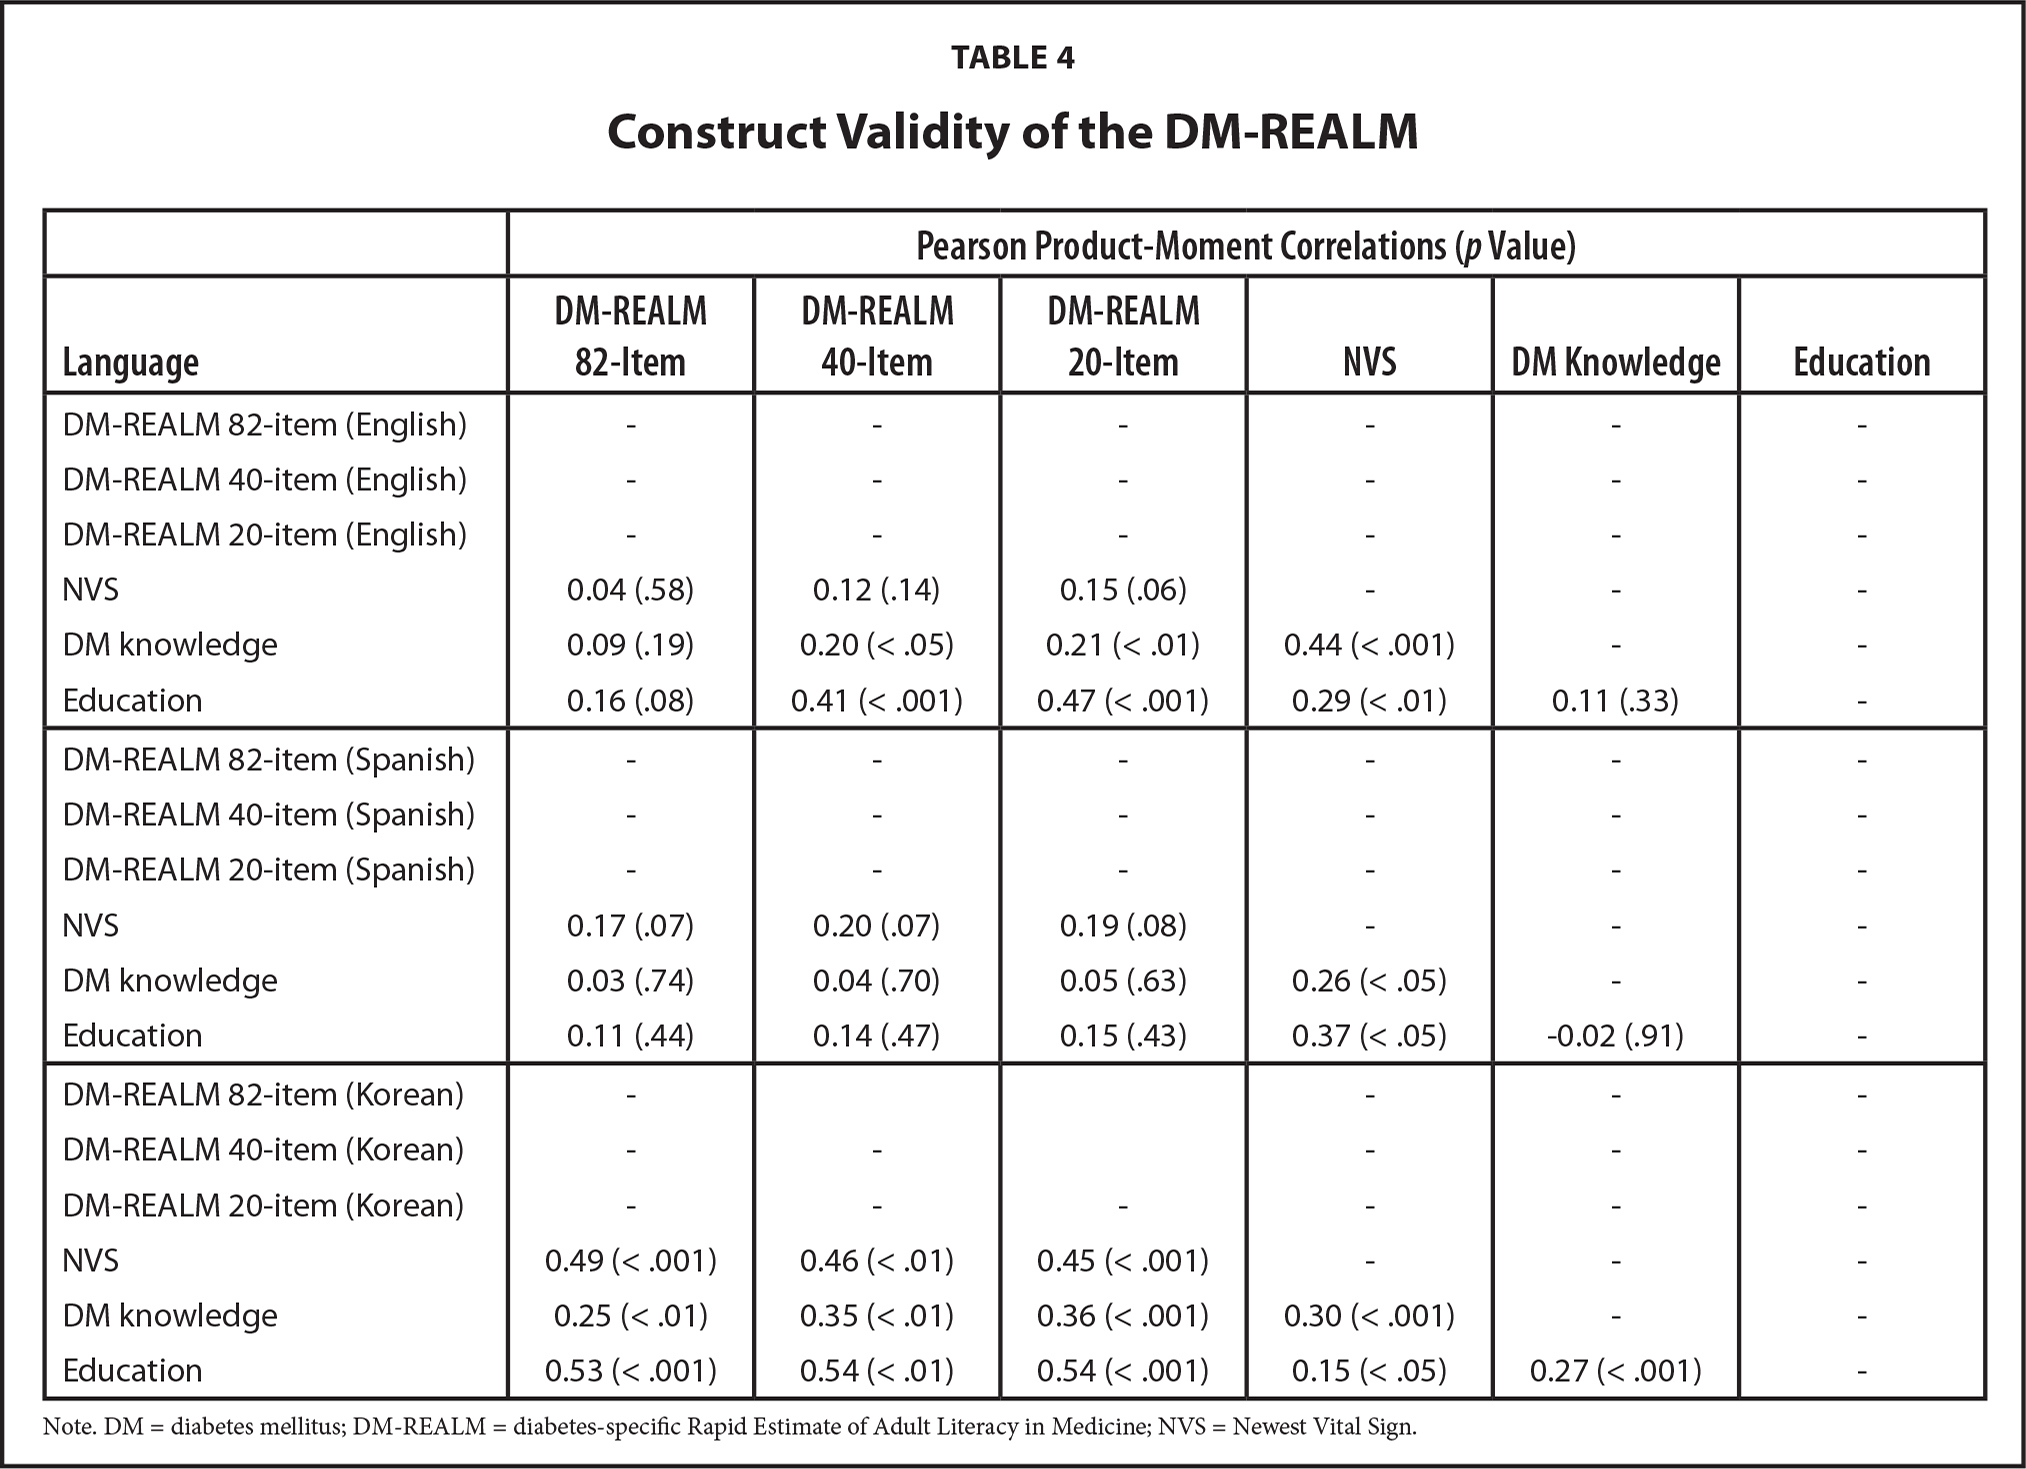 Construct Validity of the DM-REALM